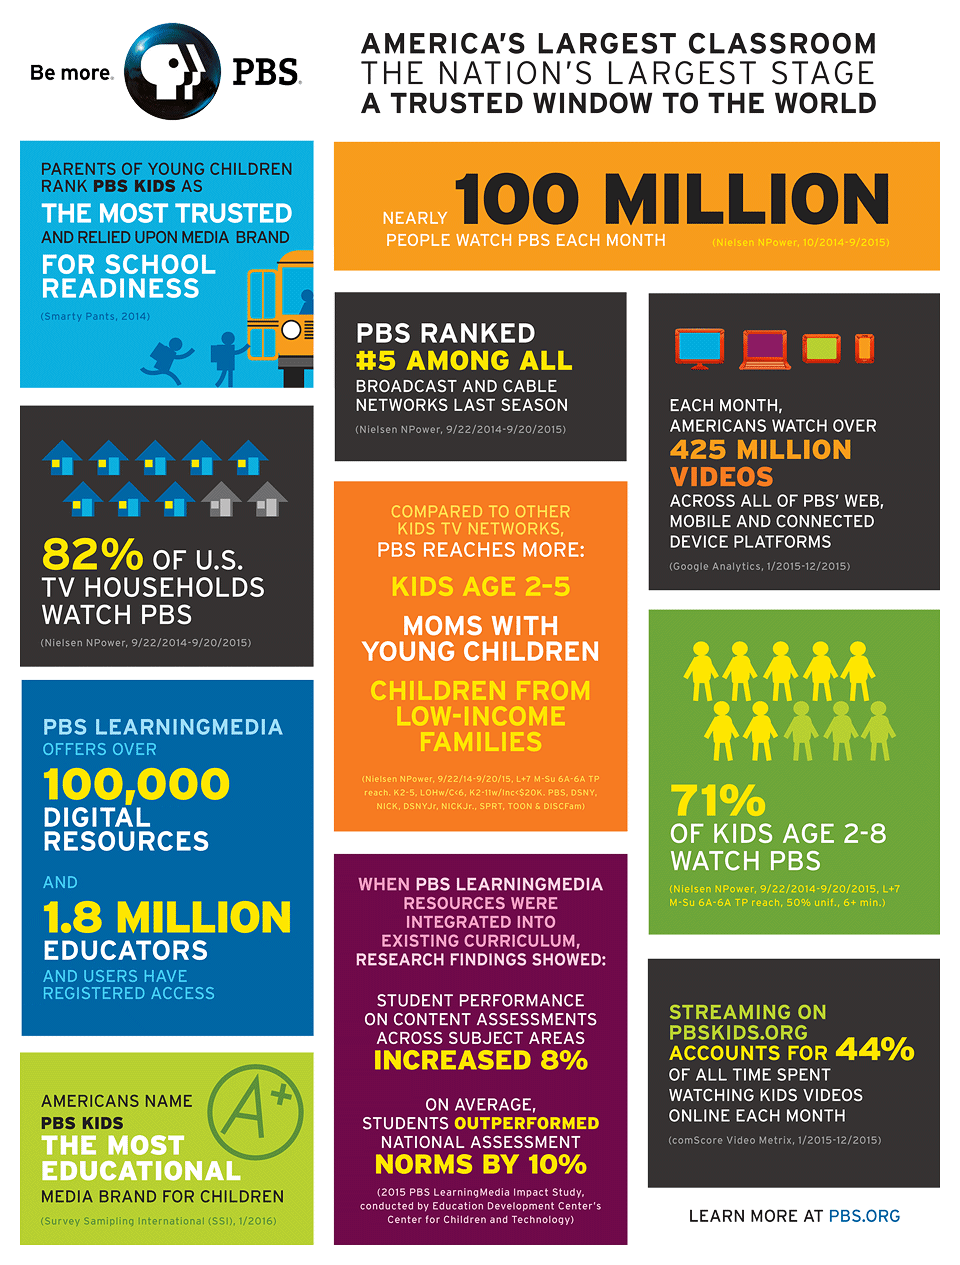 Infographic showing facts about PBS